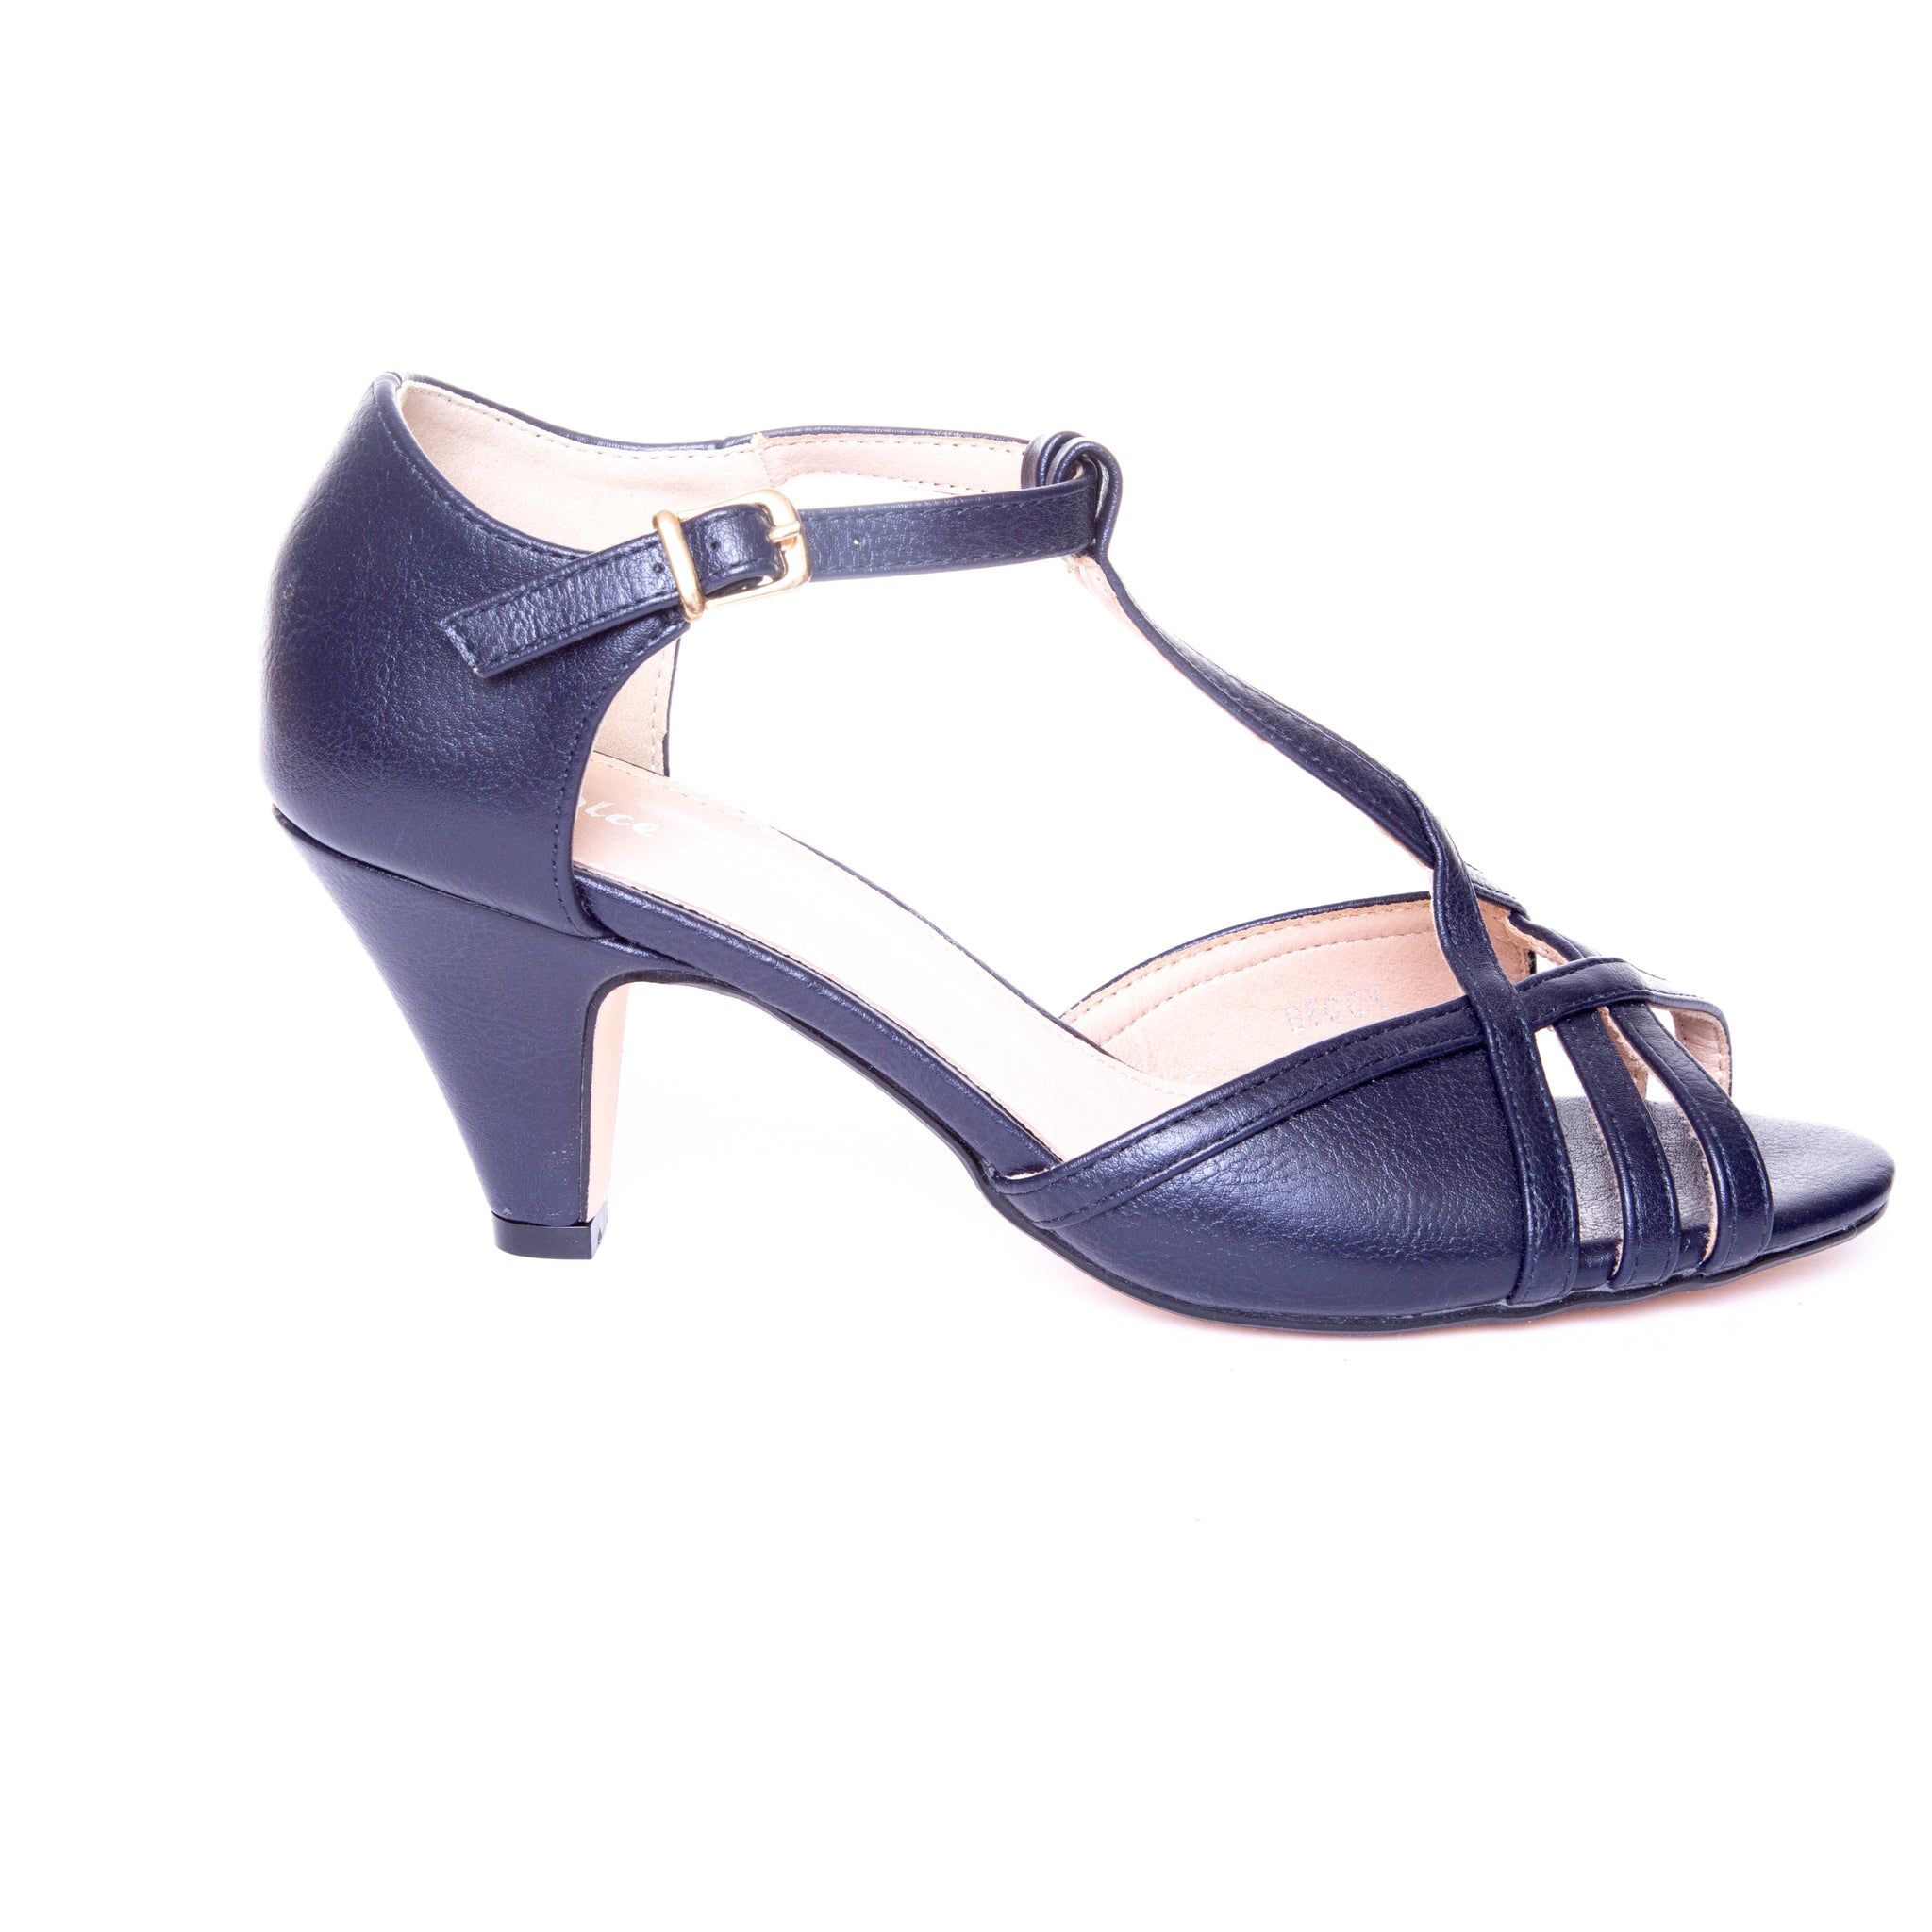 Becca by Dolce Nome | Open Toe Heel Sandals in Navy (side view)